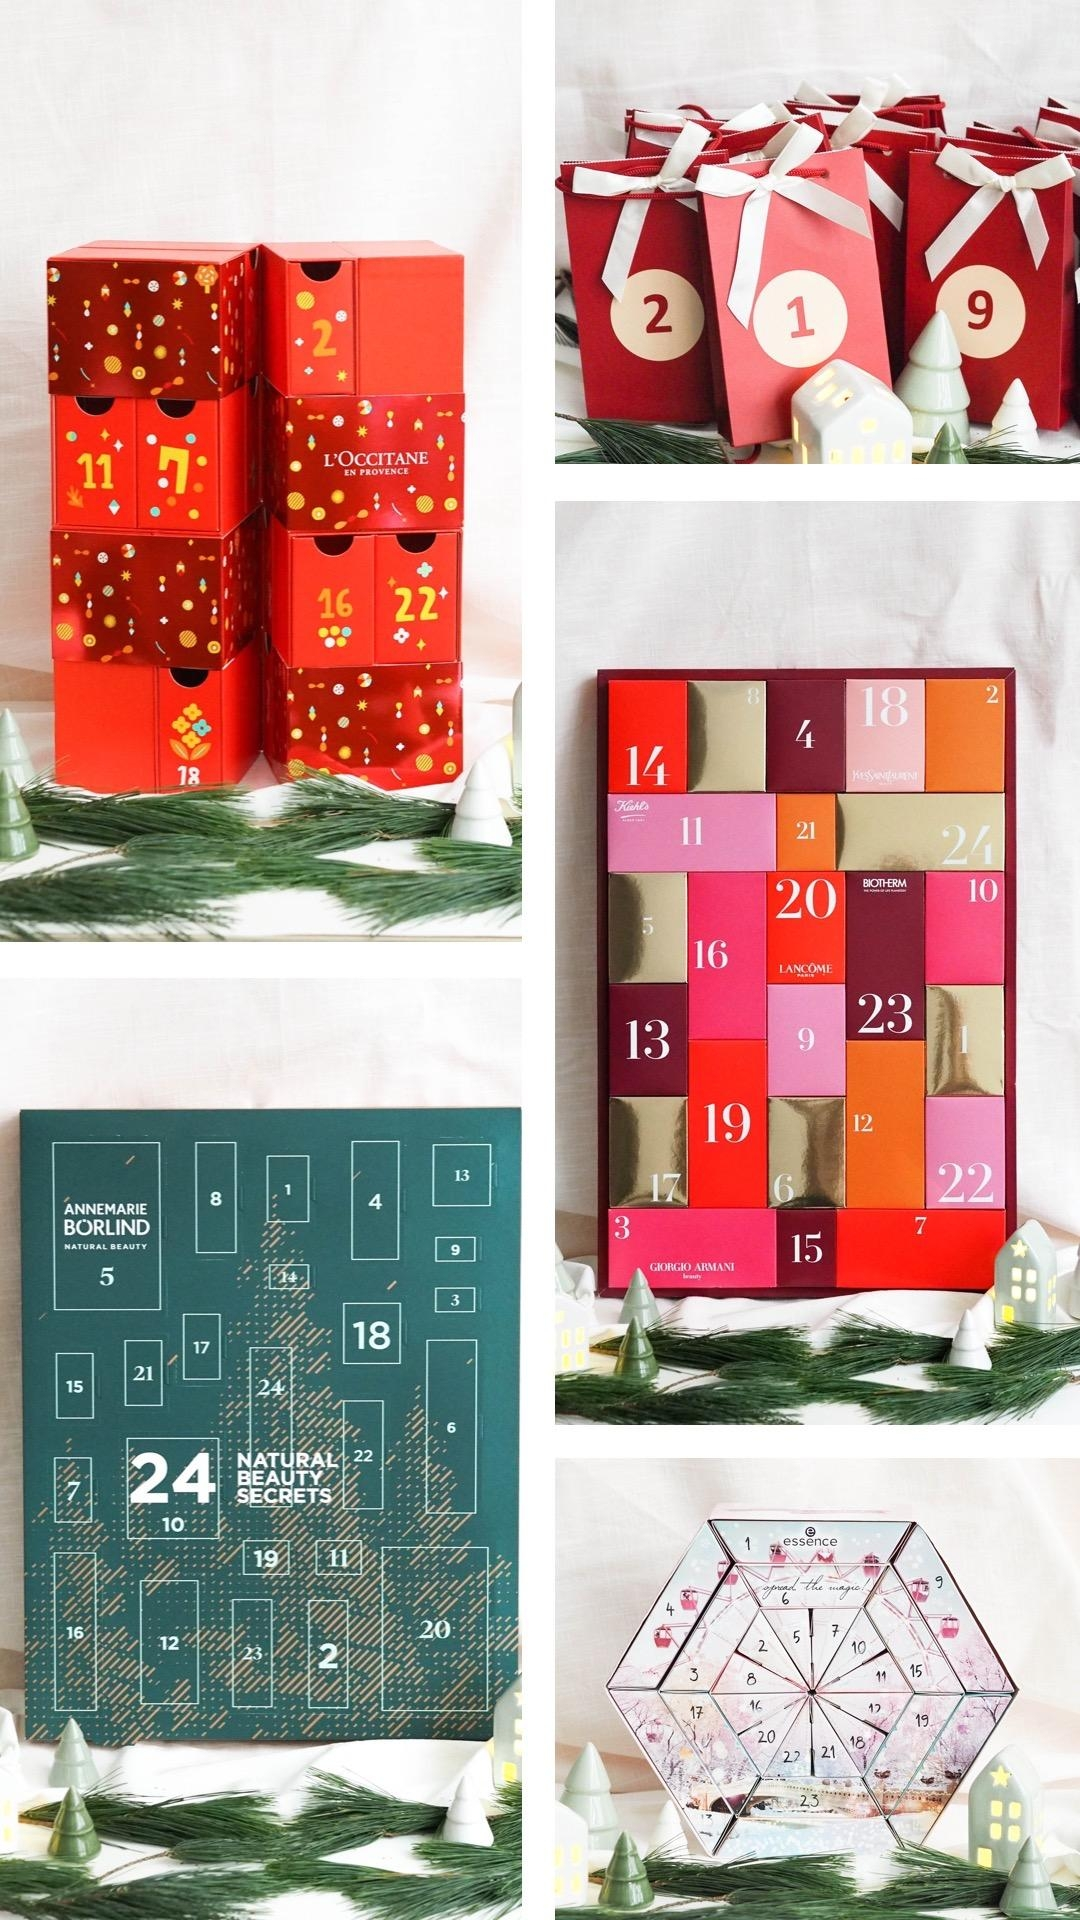 24 Türchen voller Beauty-Highlights: Das sind unsere Top 10 der Beauty-Adventskalender #beautylieblinge #beautykalender